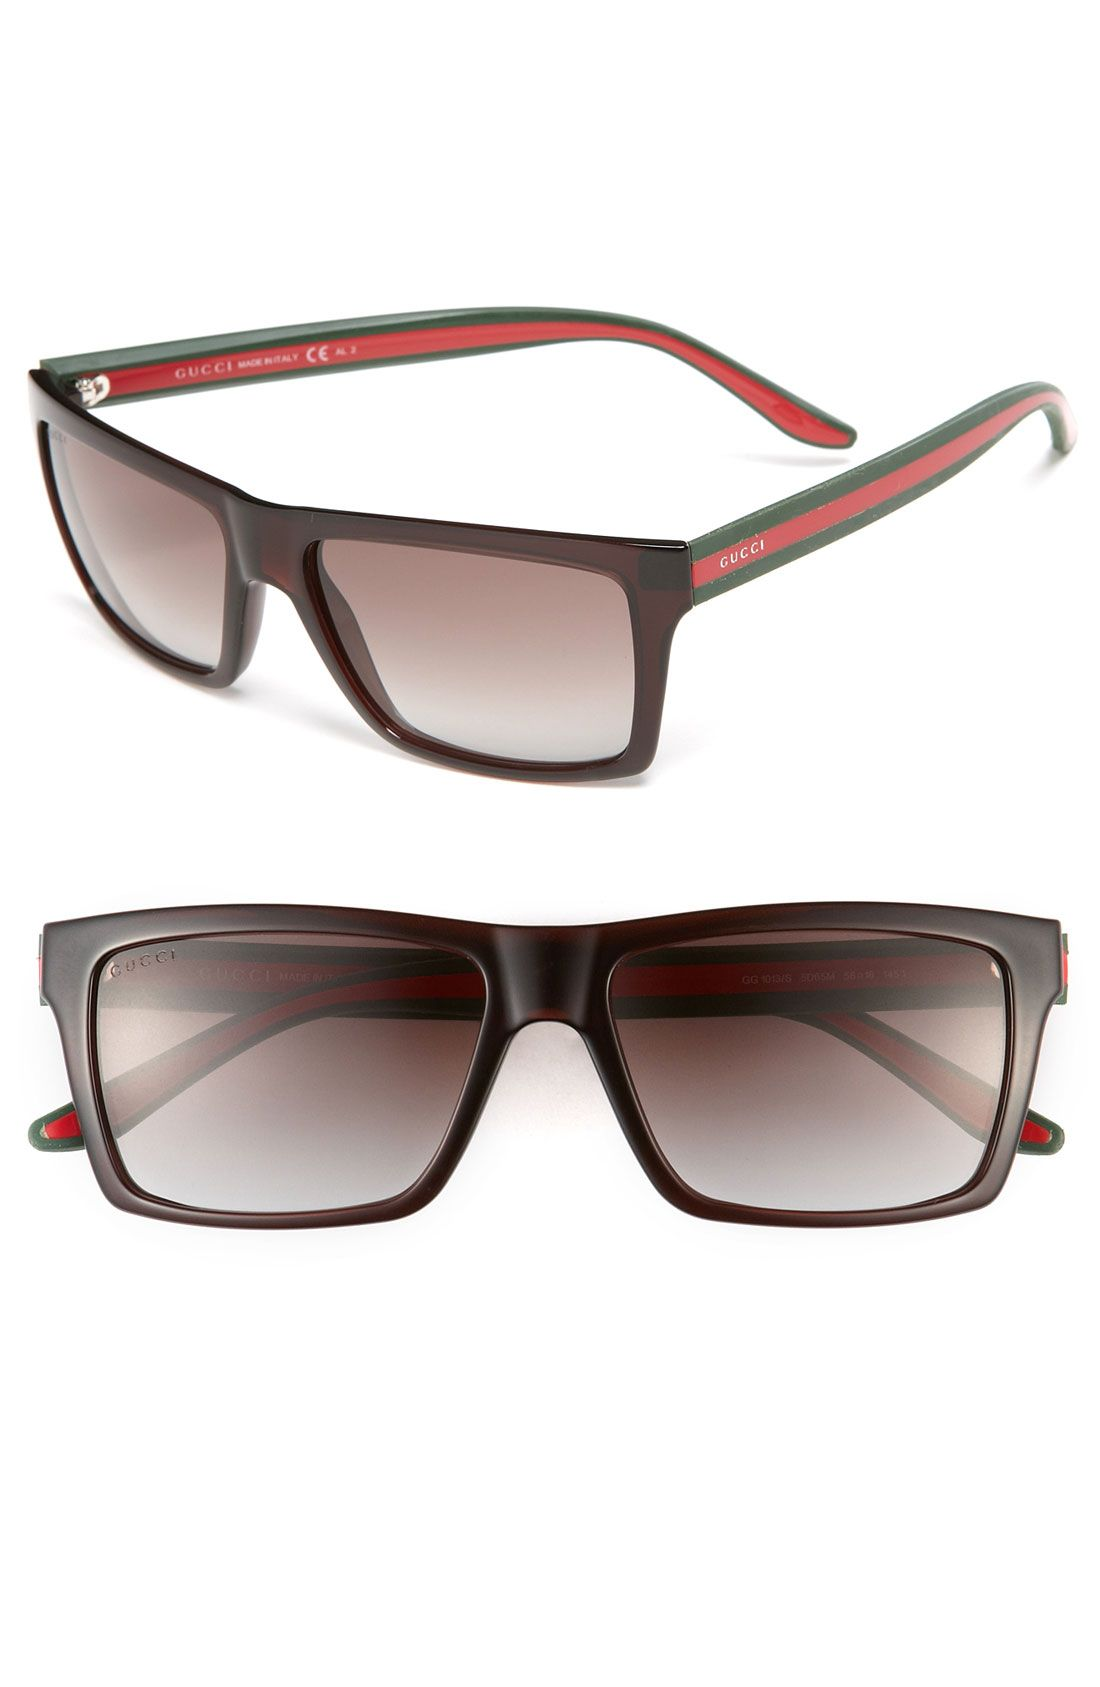 96adbf6773de2 Gucci sunglasses for him.